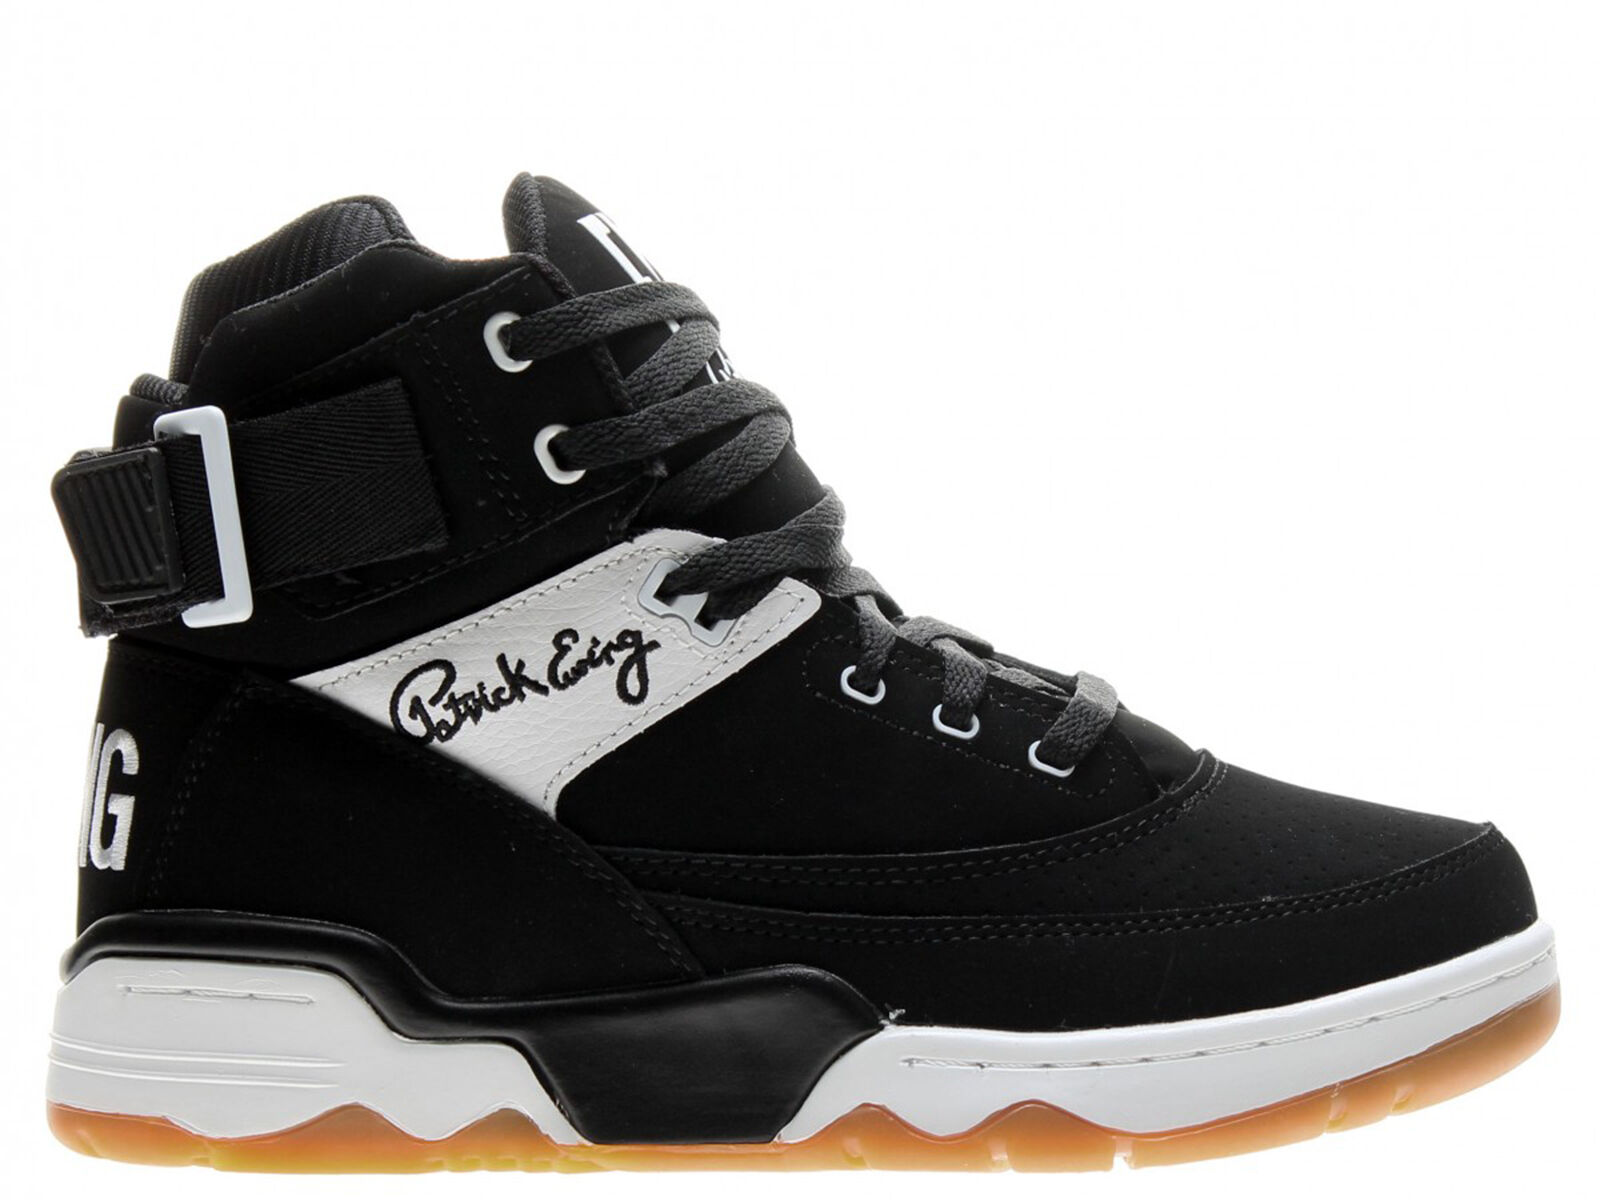 Brand New Patrick Ewing 33 HI Men's Athletic Fashion Sneakers Price reduction Cheap women's shoes women's shoes